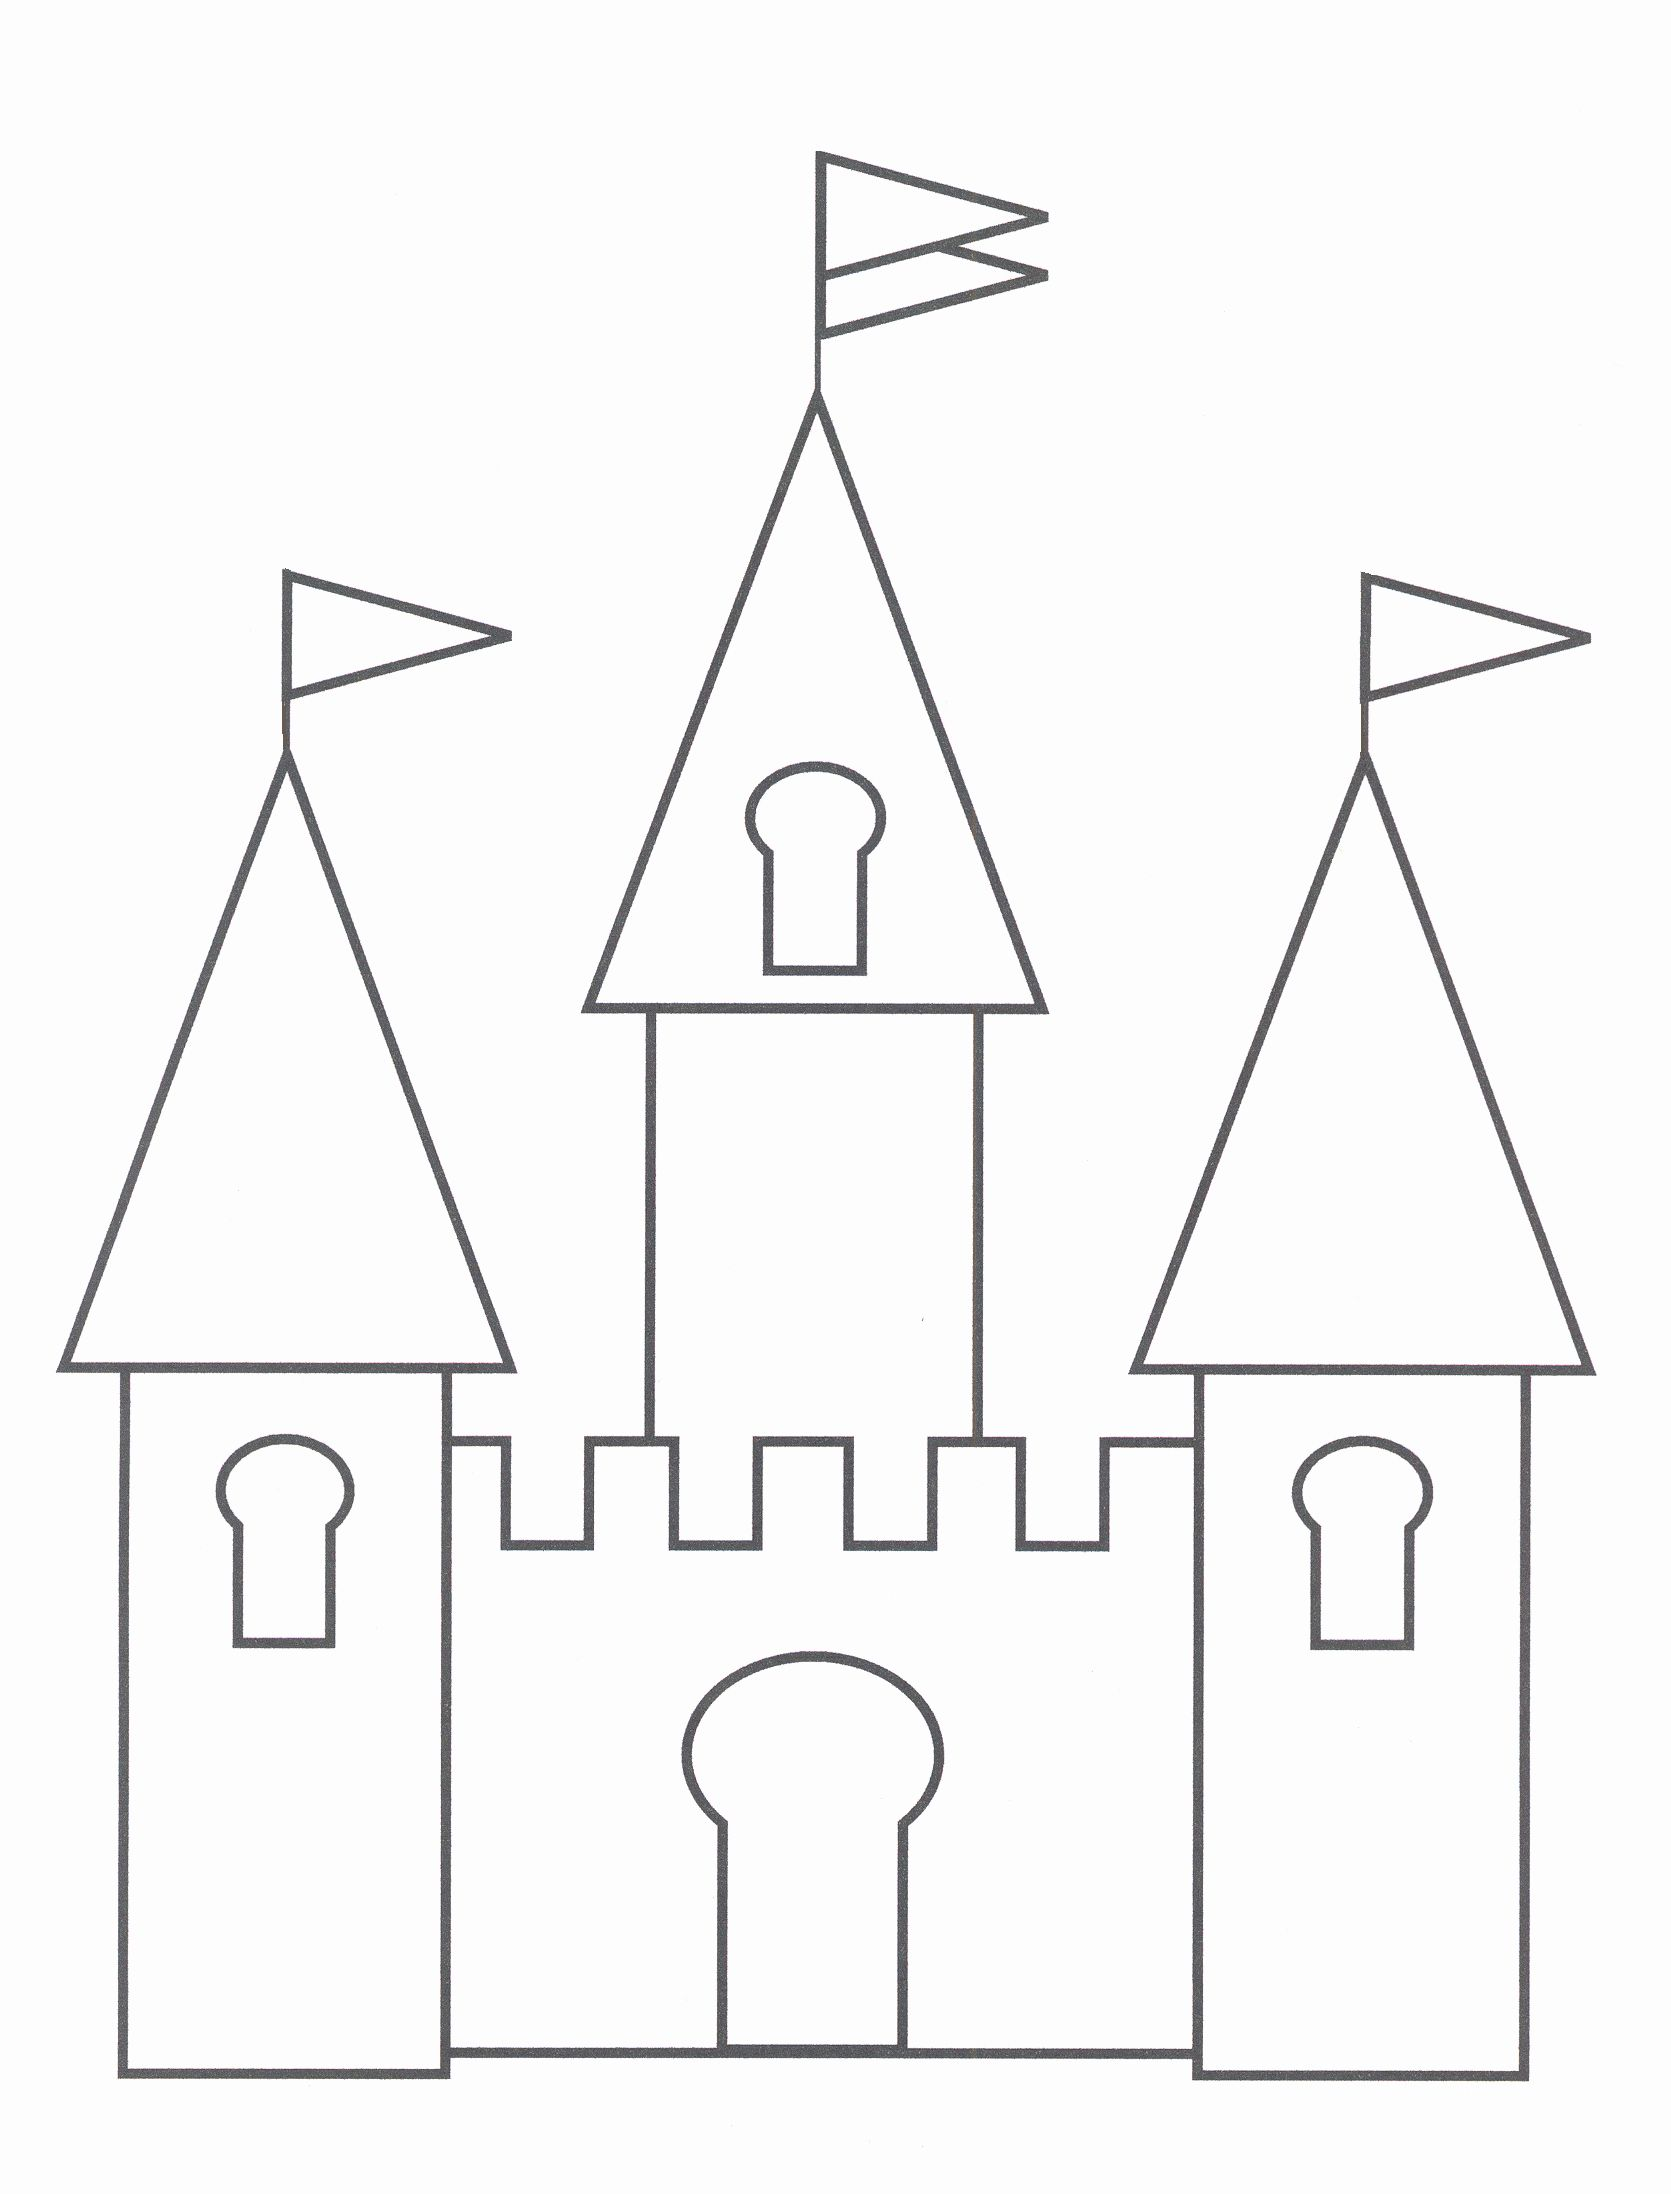 Princess And Castle Coloring Pages Luxury Coloring Book Castle Coloring Pages Stupendous Book Free Castle Coloring Page Castle Crafts Princess Crafts